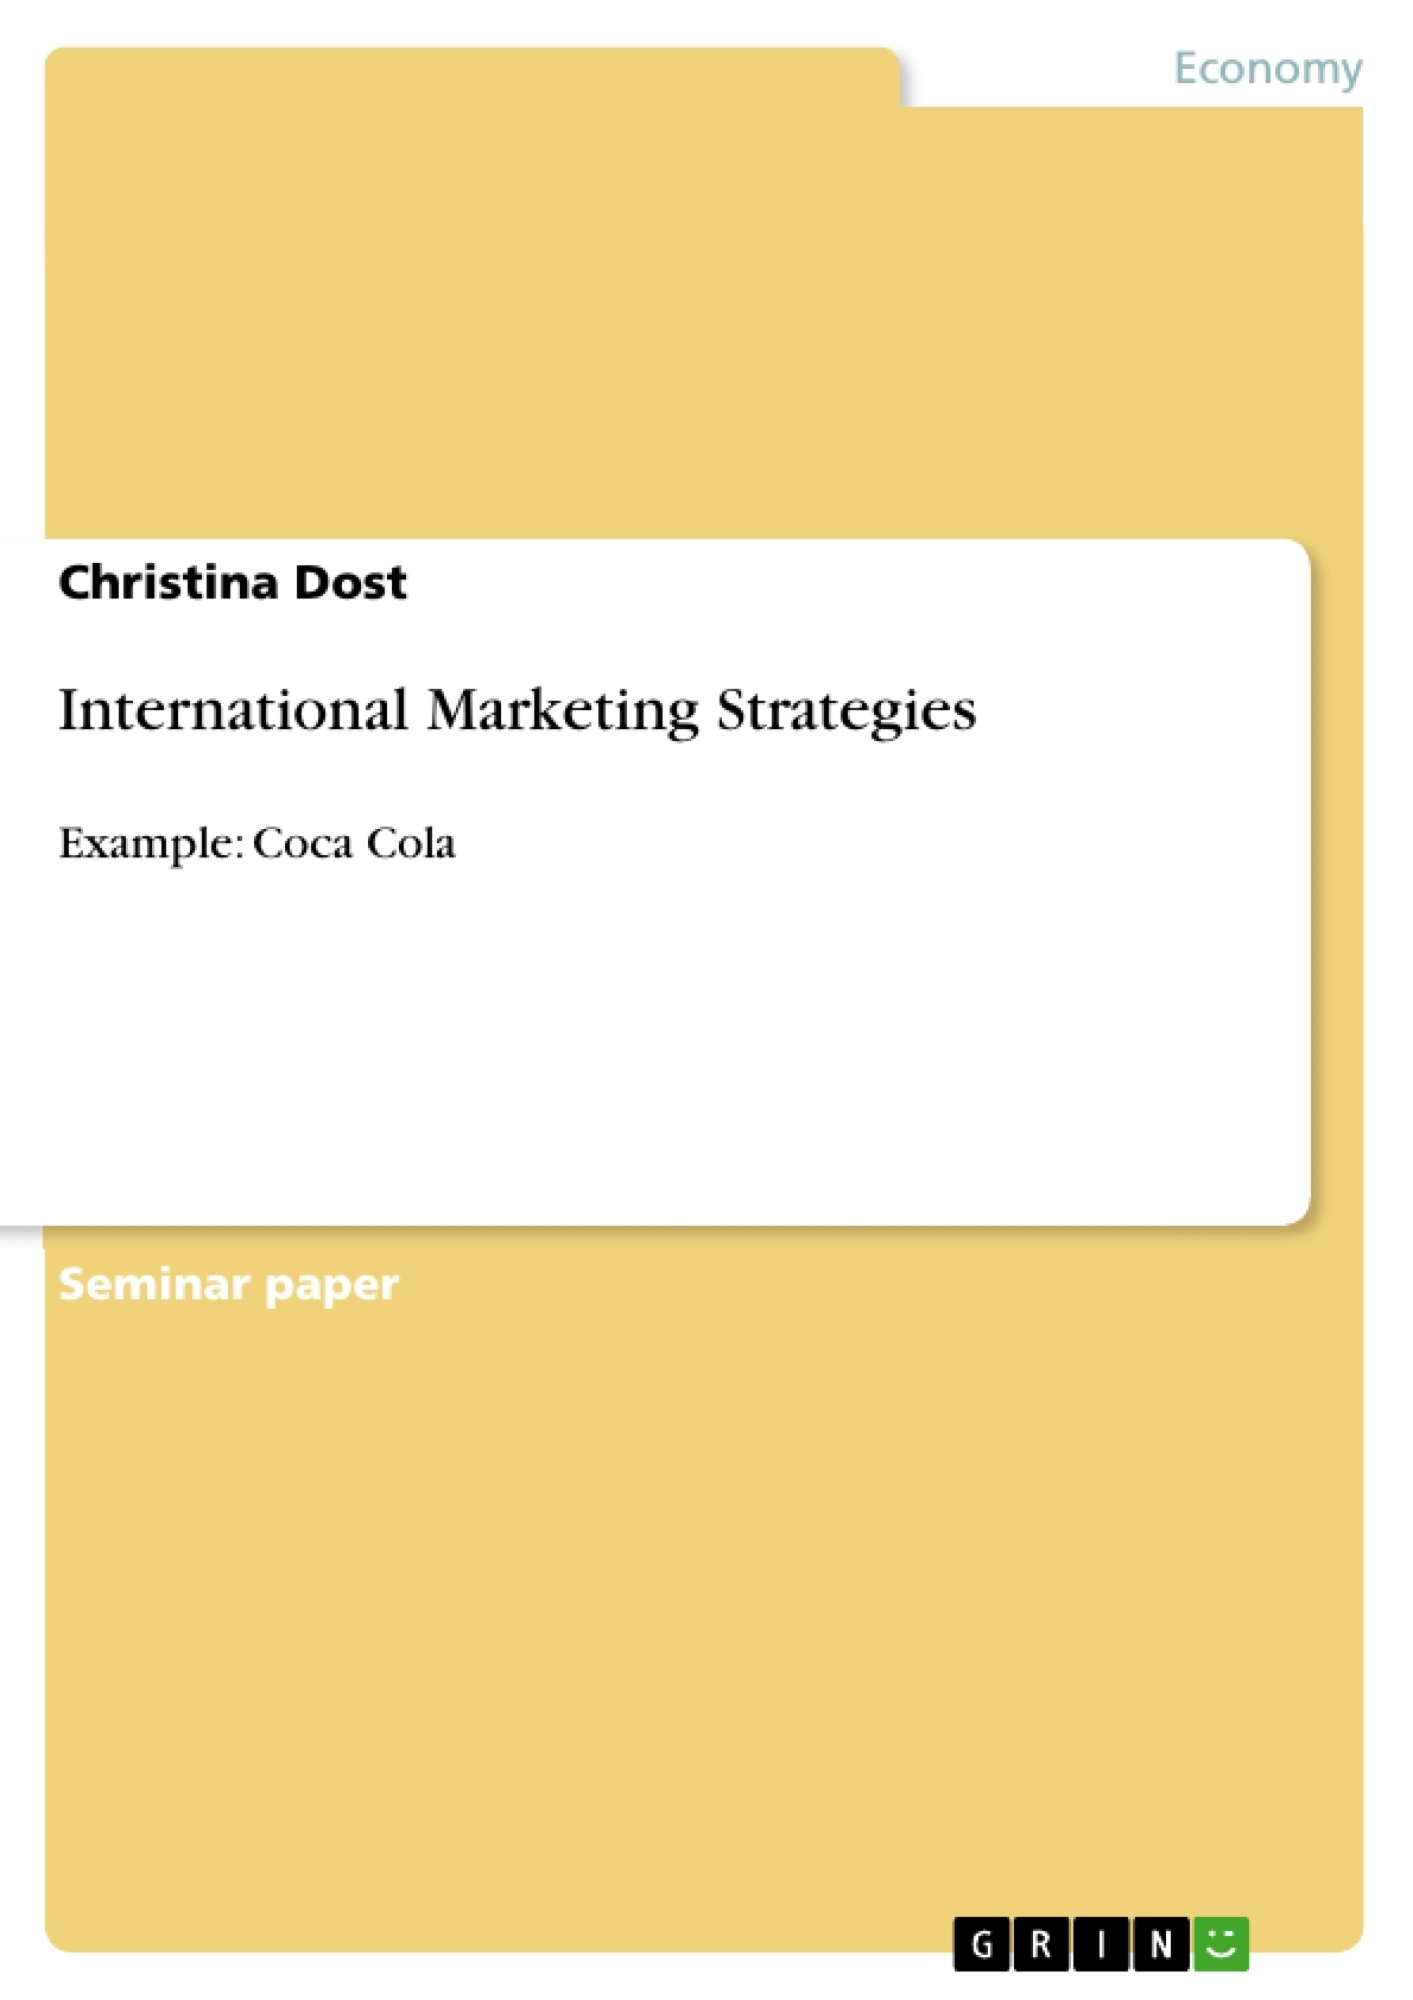 bachelor thesis international marketing